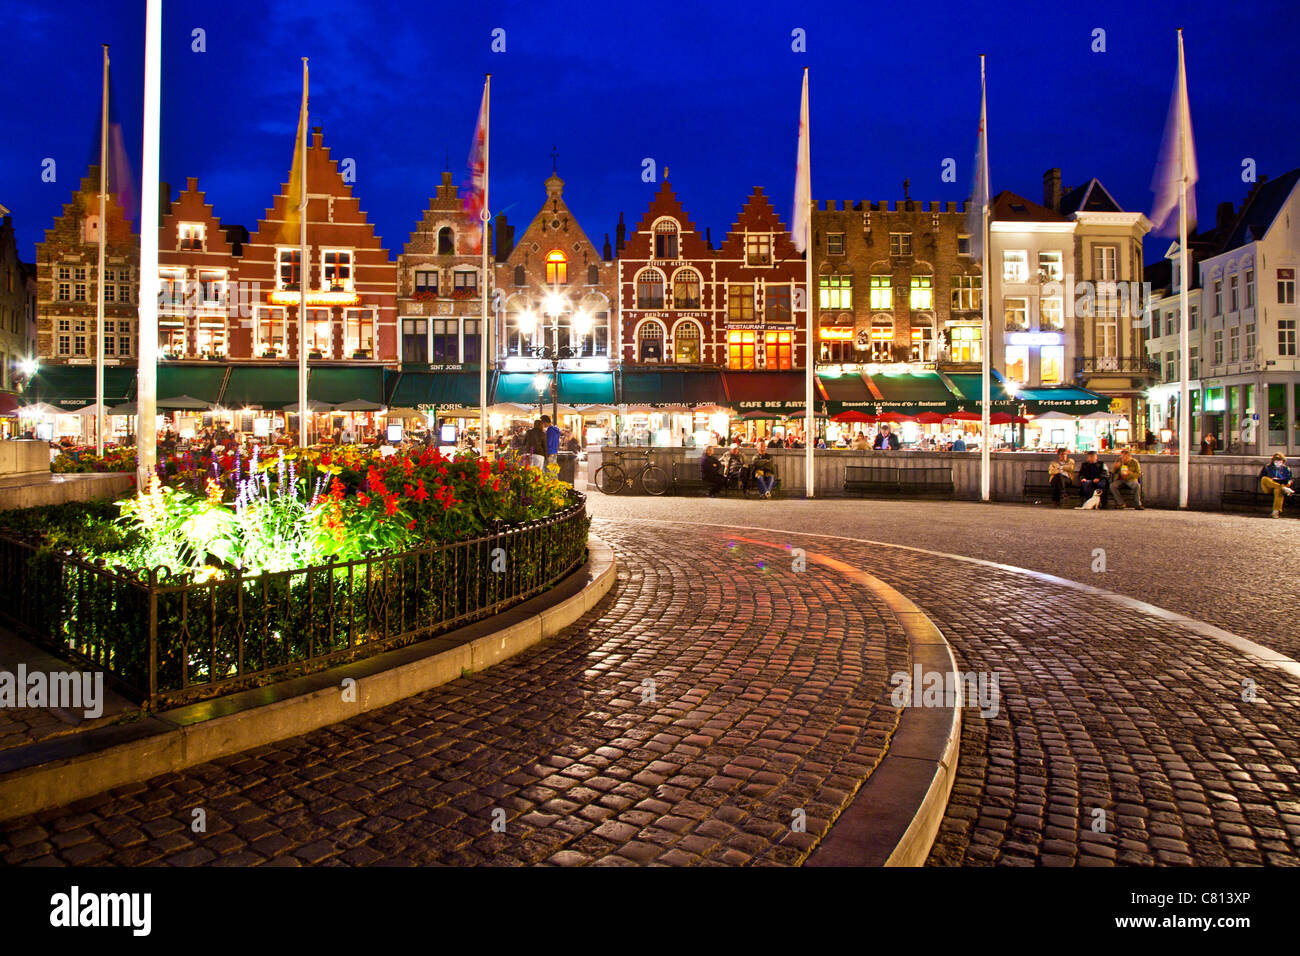 Bars, cafes, restaurants, and tourists in the Grote Markt or Market Square in Bruges, (Brugge), Belgium at twilight. Stock Photo